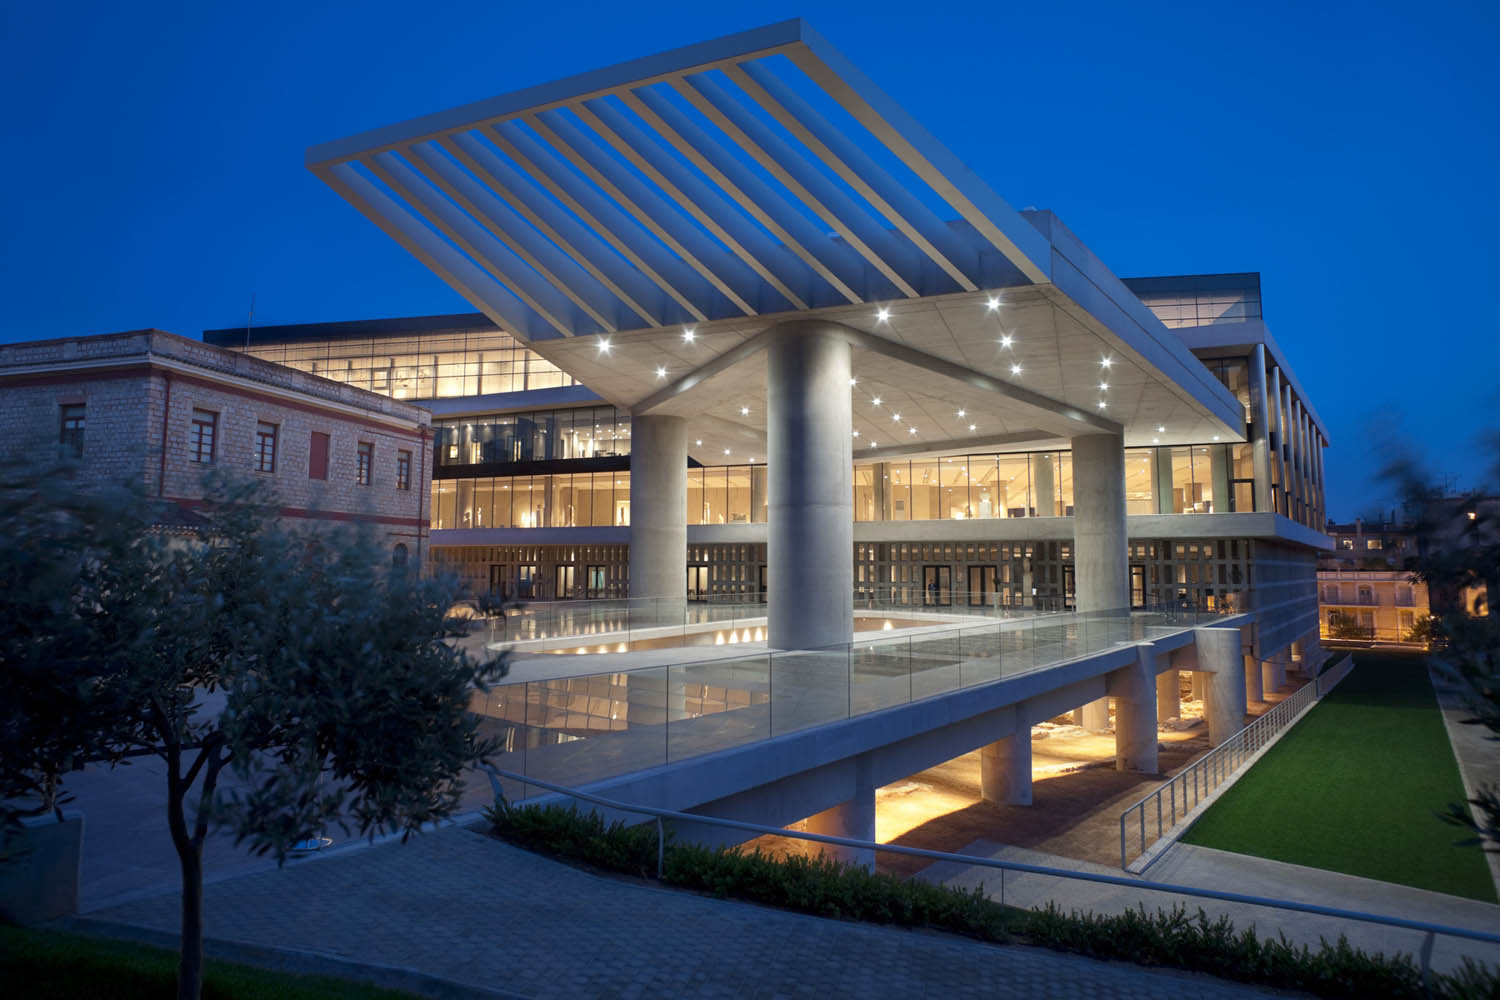 athens-acropolis-museum evans travel tours and transfers athens - mykonos